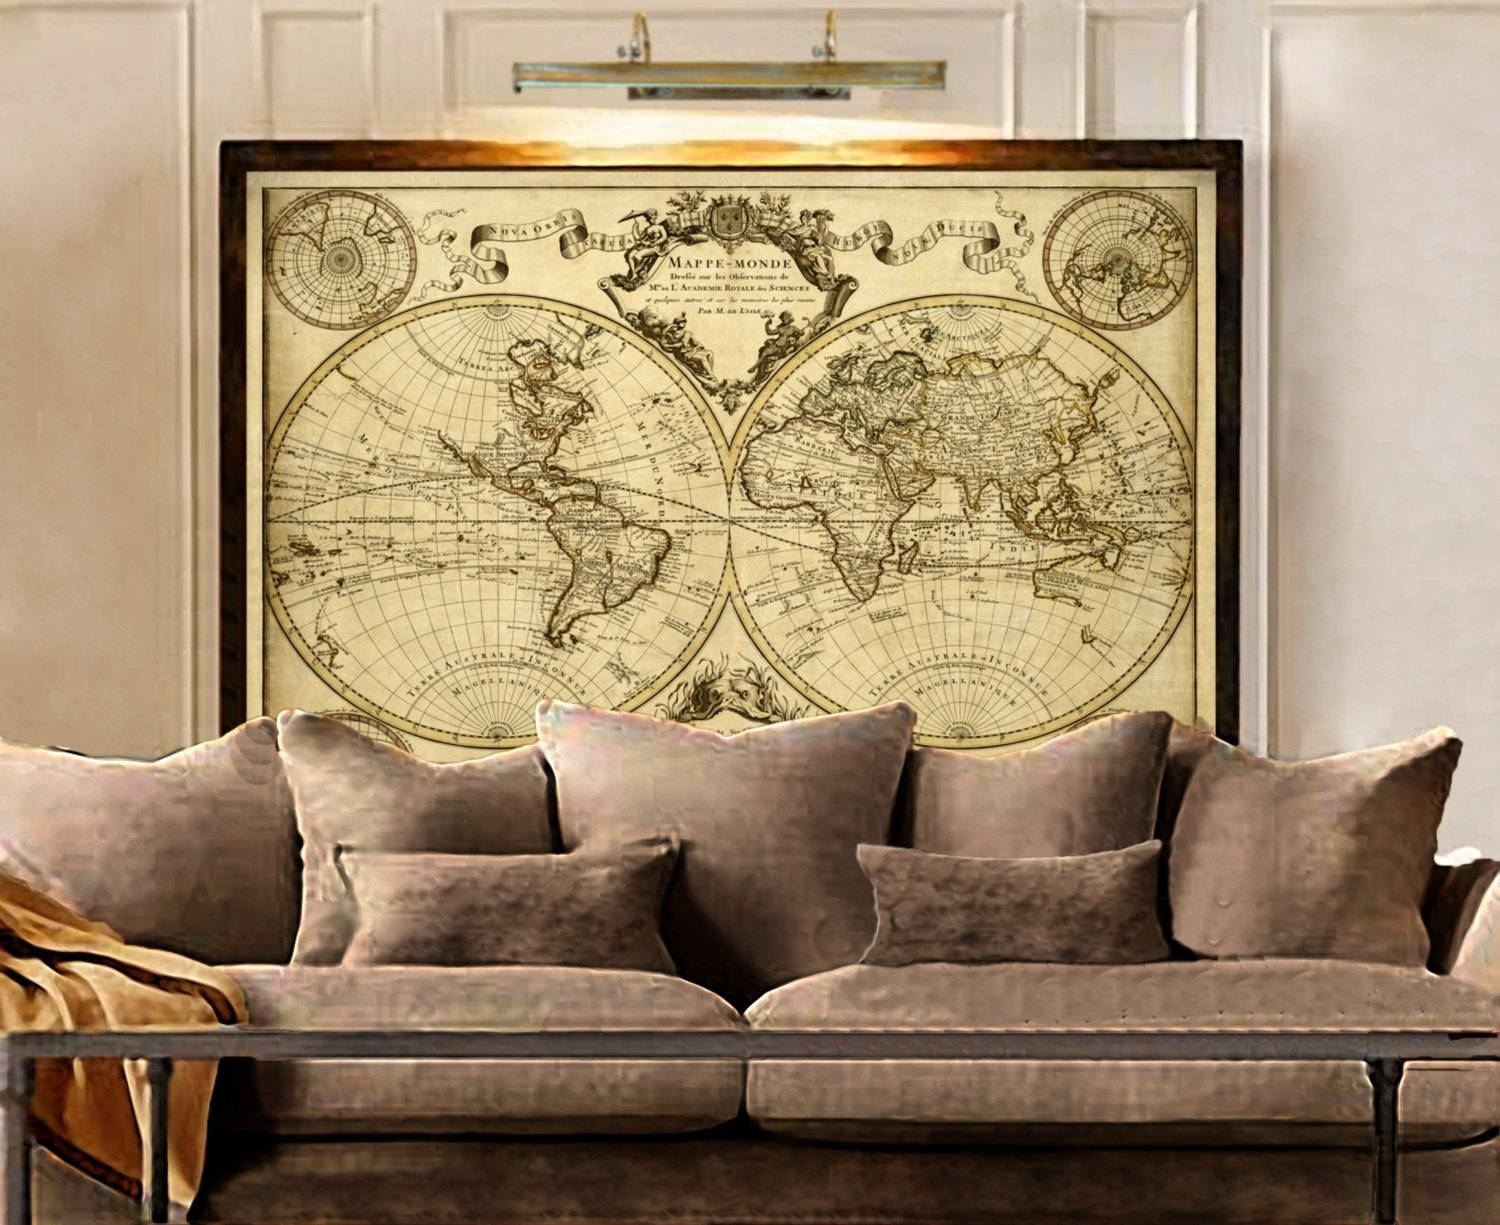 L'isle's 1720 Old World Map Historic Map Antique Style For Best And Newest Antique Map Wall Art (View 3 of 20)